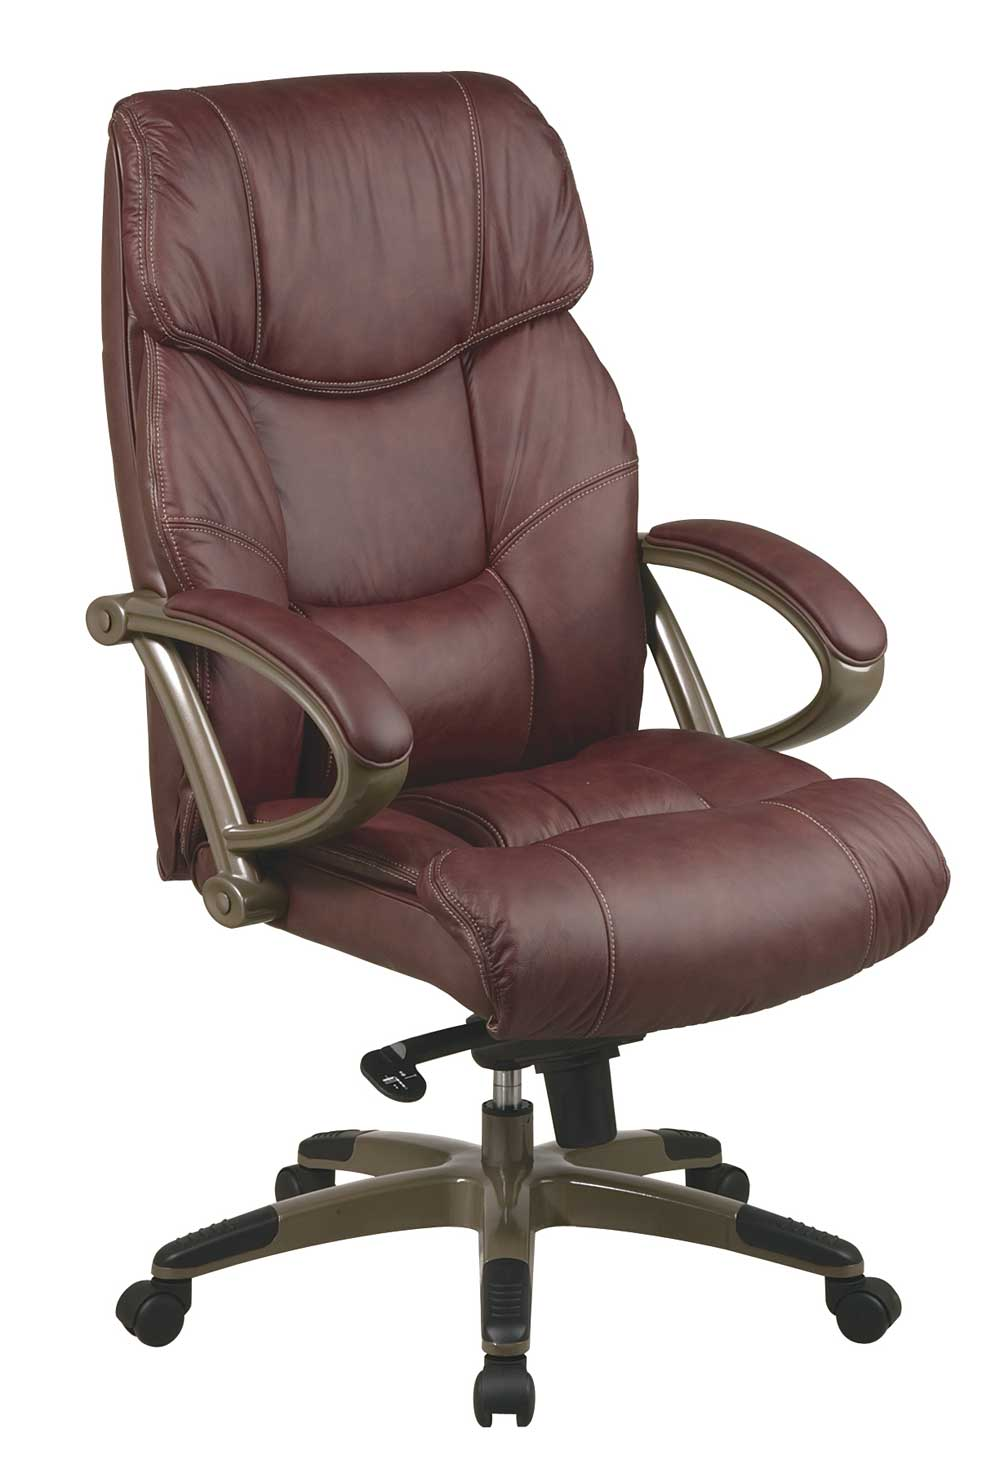 adjustable brown leather Comfortable desk chairs